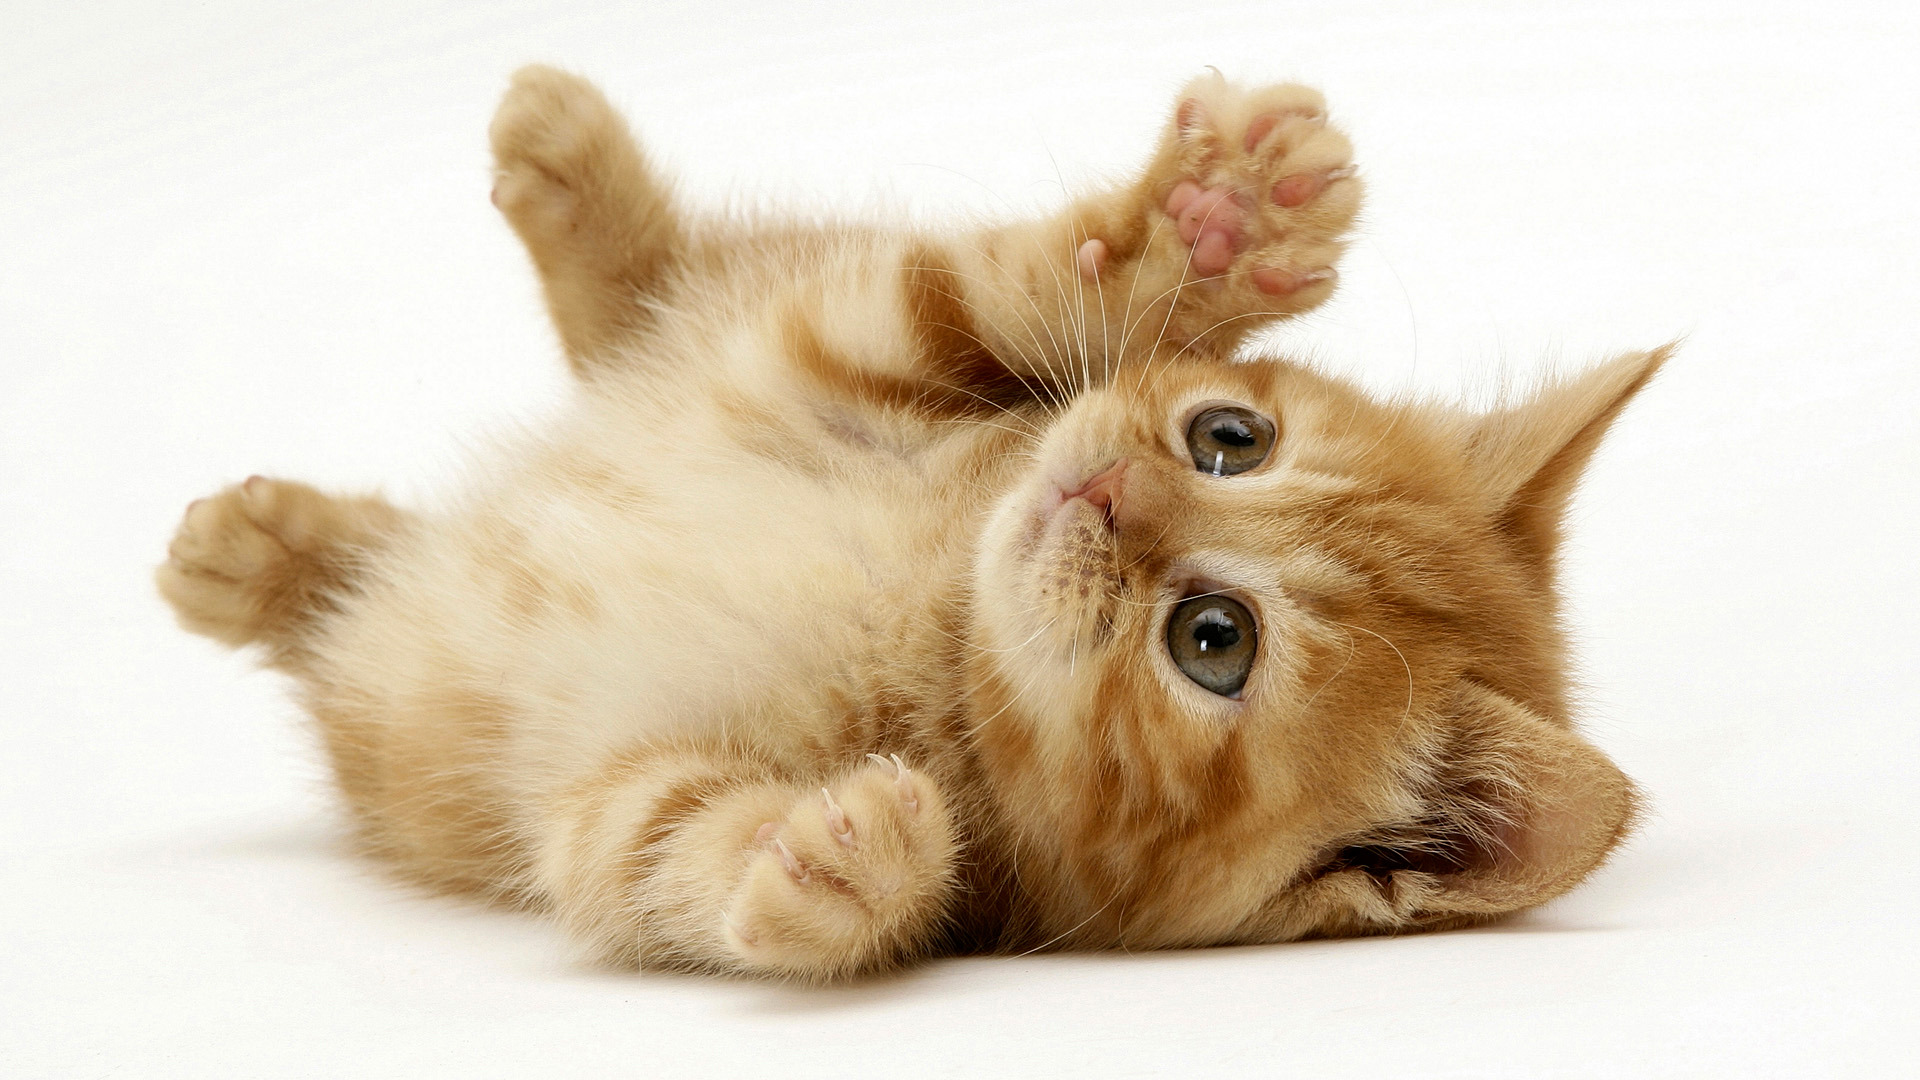 Playful Small Red Kitten 195.03 Kb